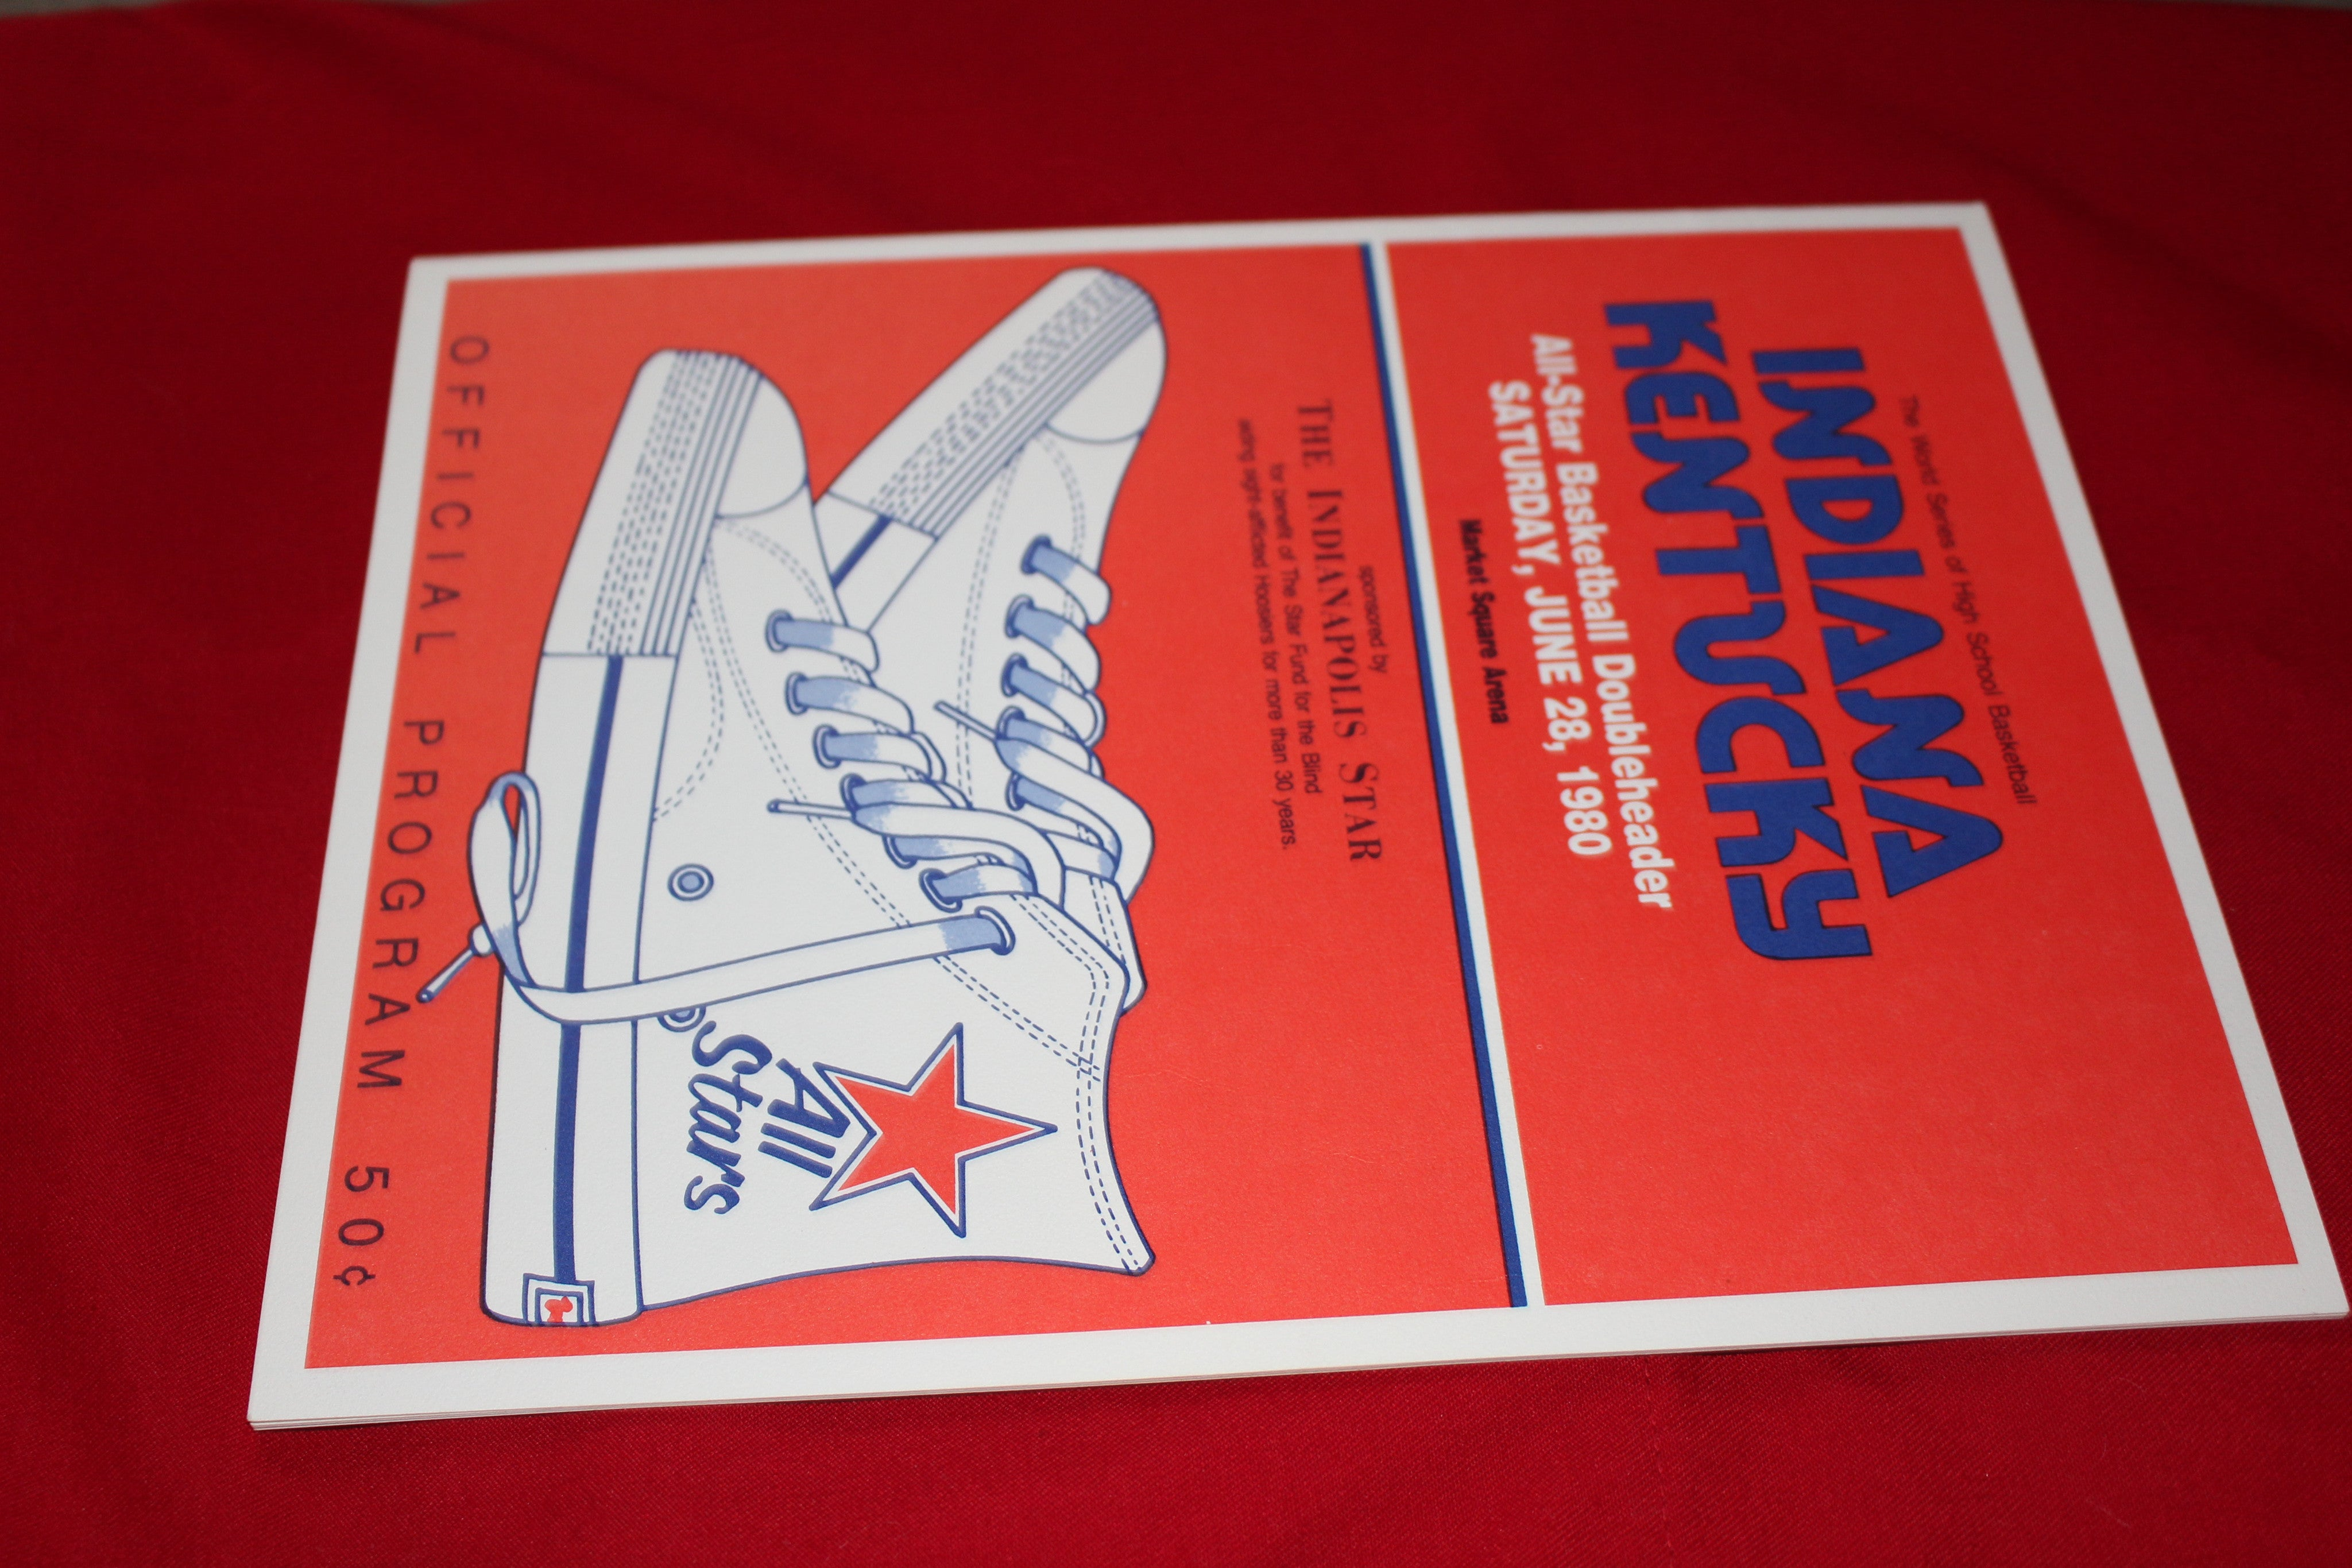 1980 Indiana vs Kentucky High School Basketball All Star Game Program - Vintage Indy Sports